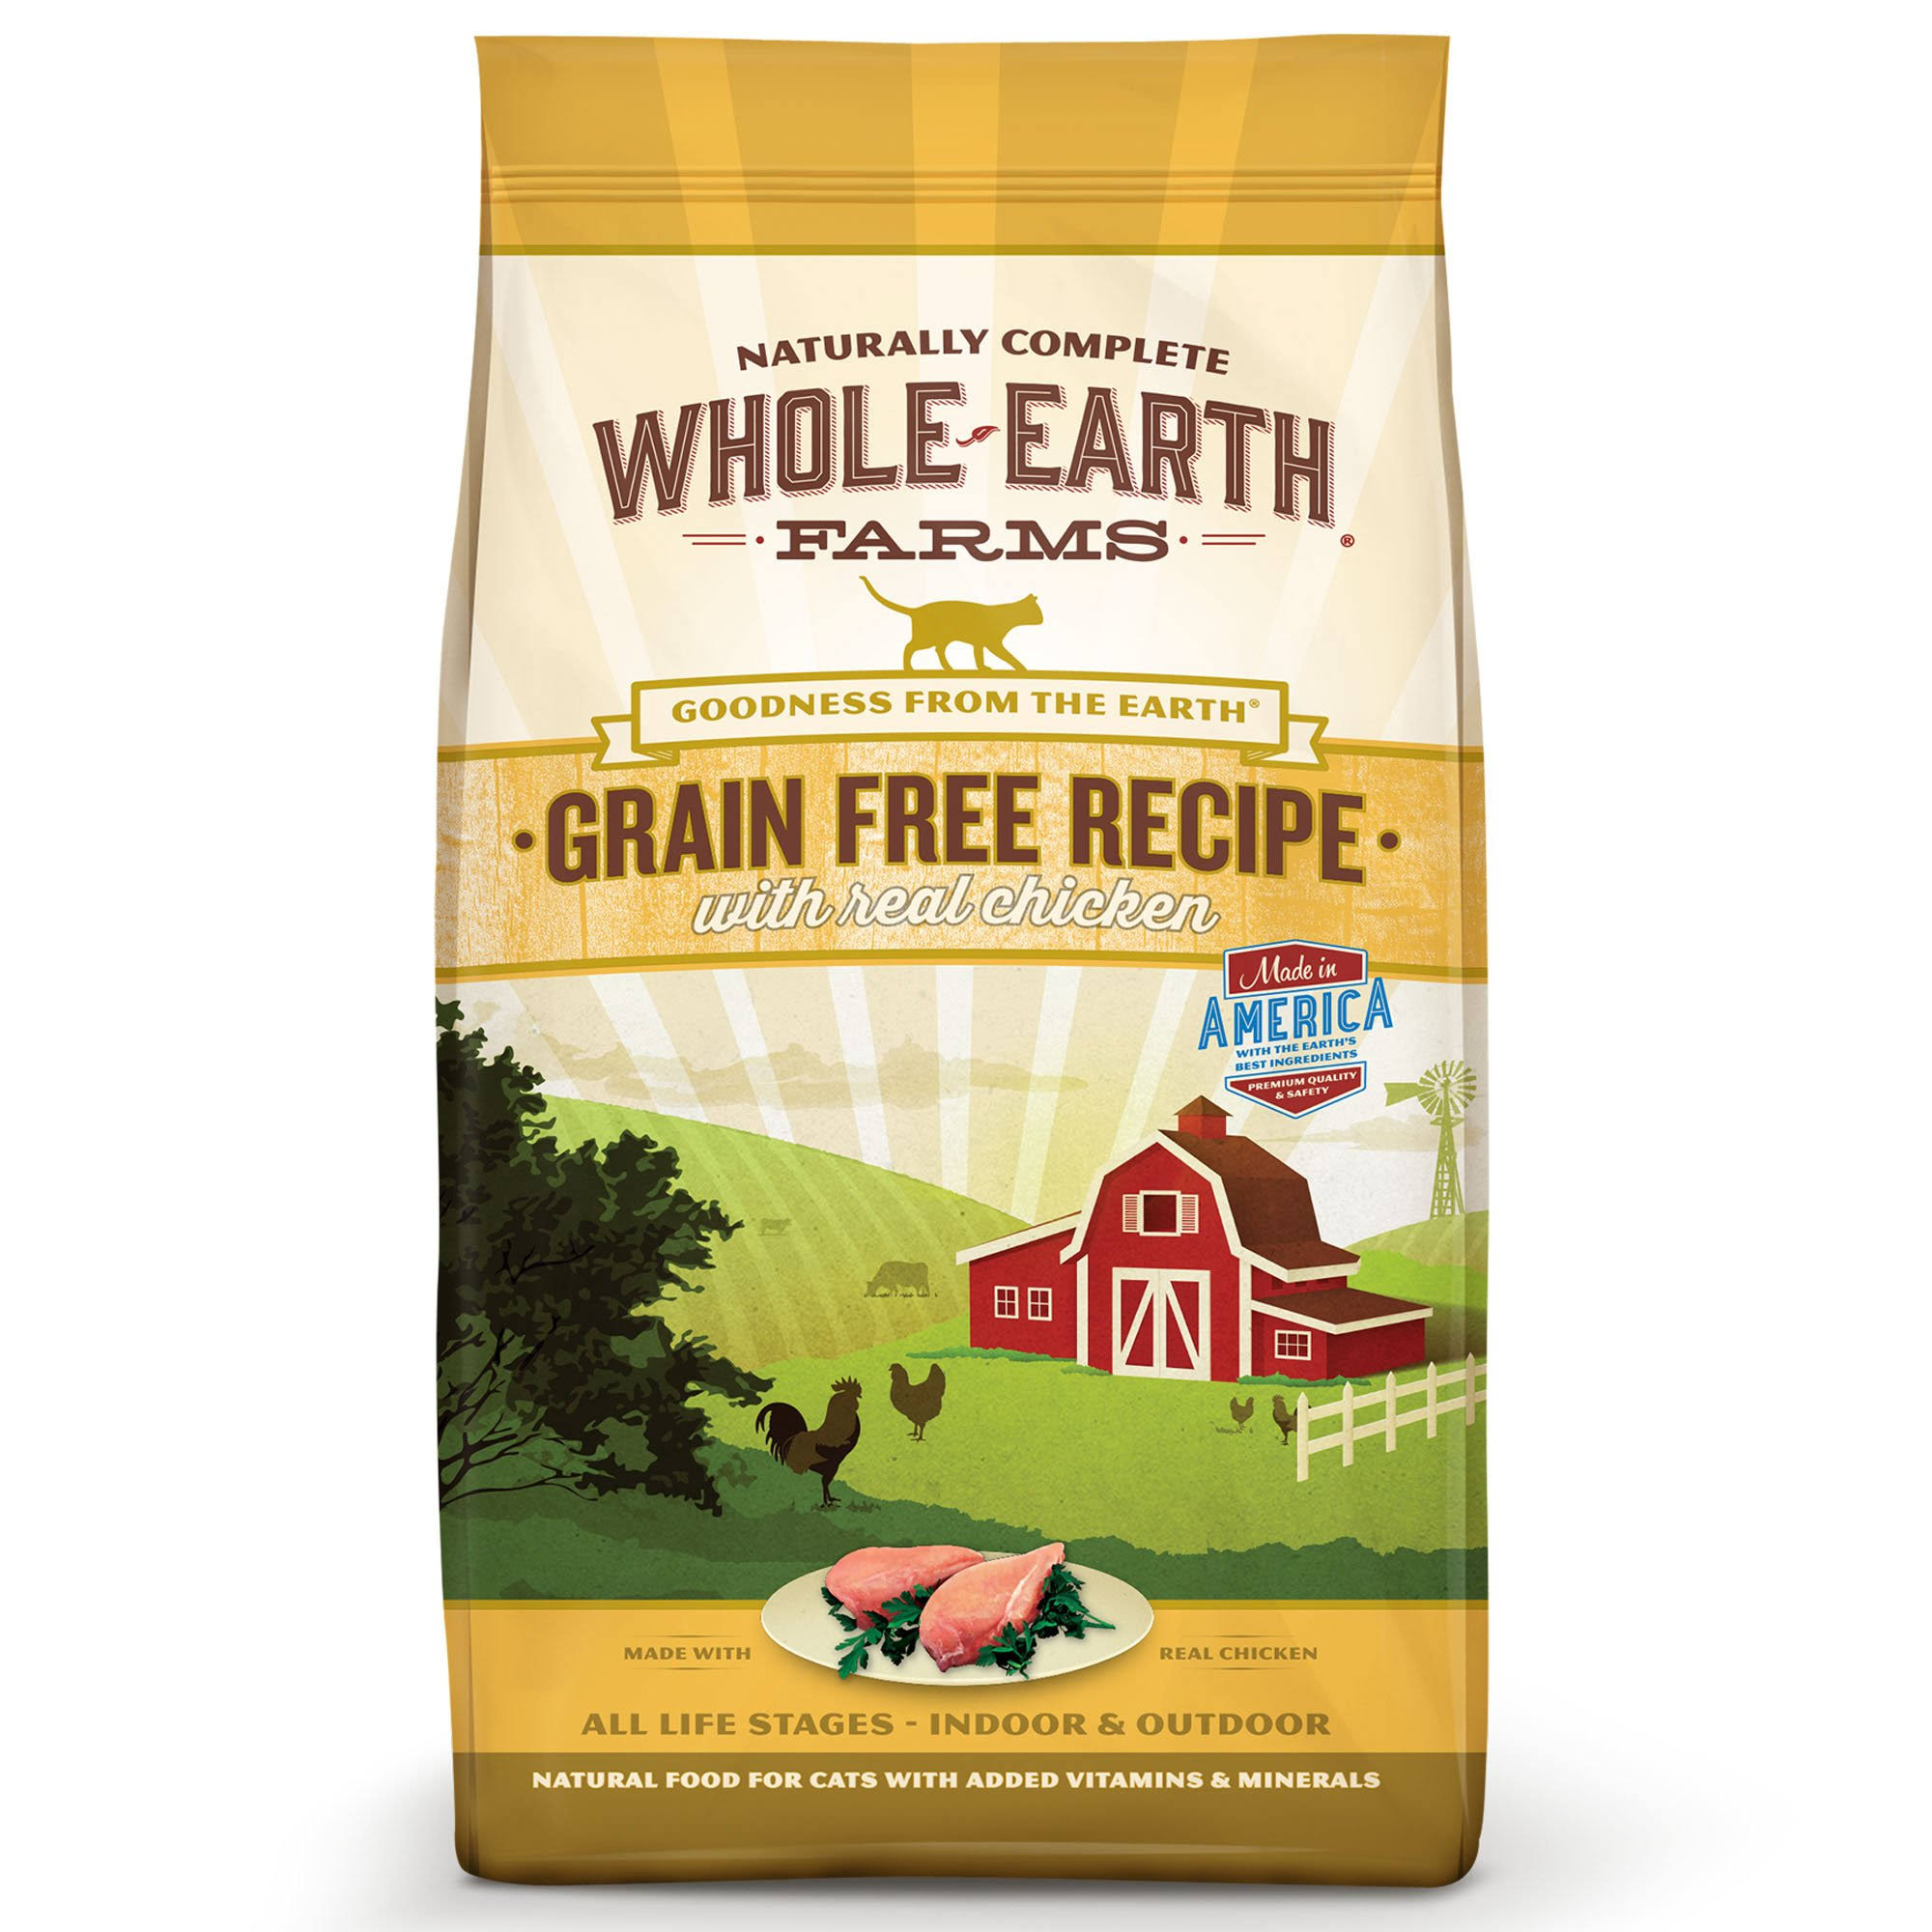 Whole Earth Farms Grain Free Recipe Dry Cat Food - Chicken, 5lbs